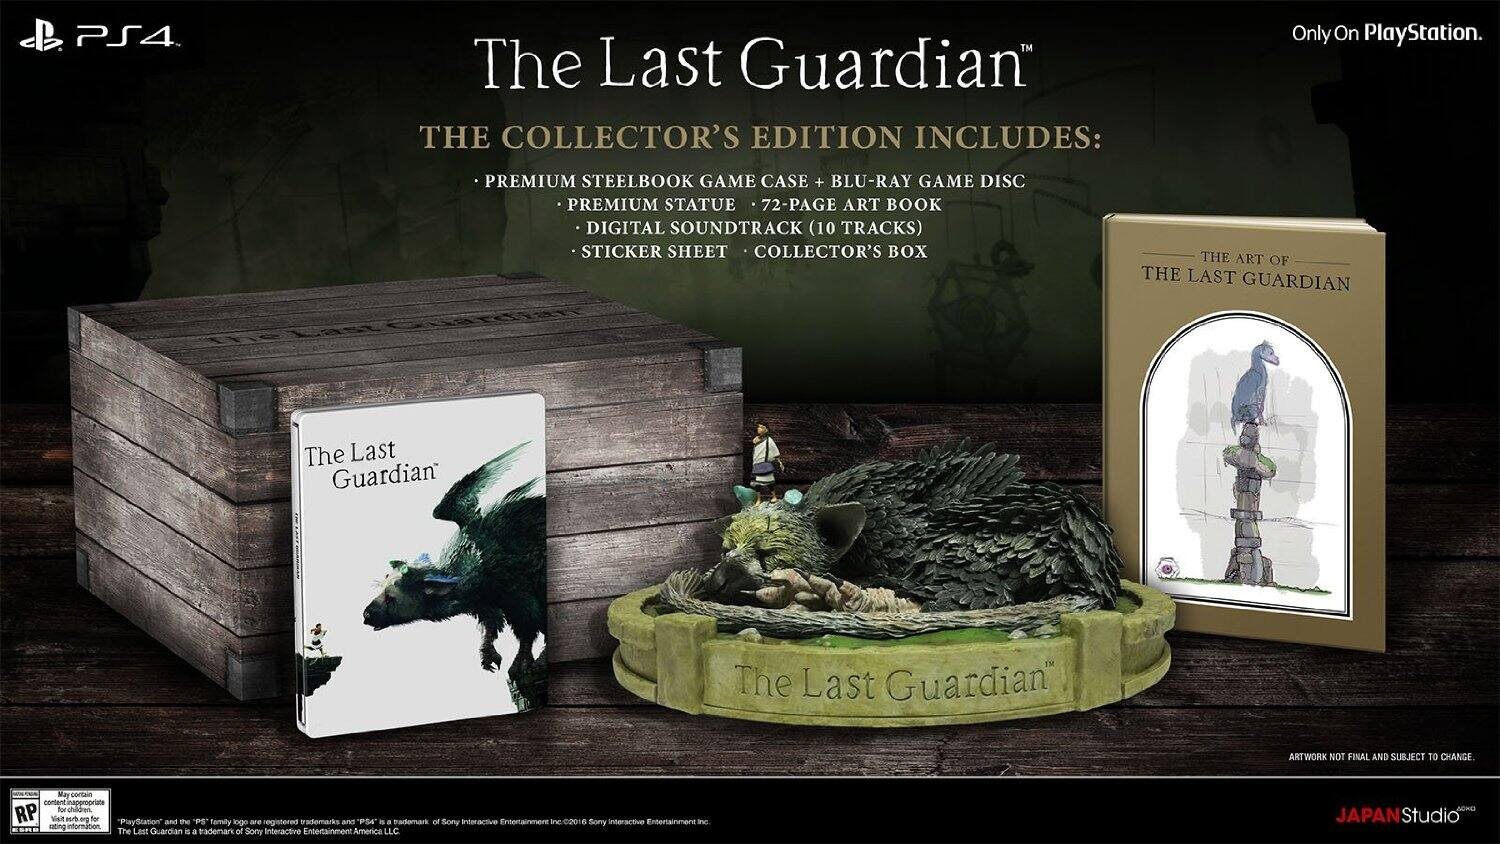 The Last Guardian - Collector's Edition - PlayStation 4 - Preorder $119.99 @ Amazon